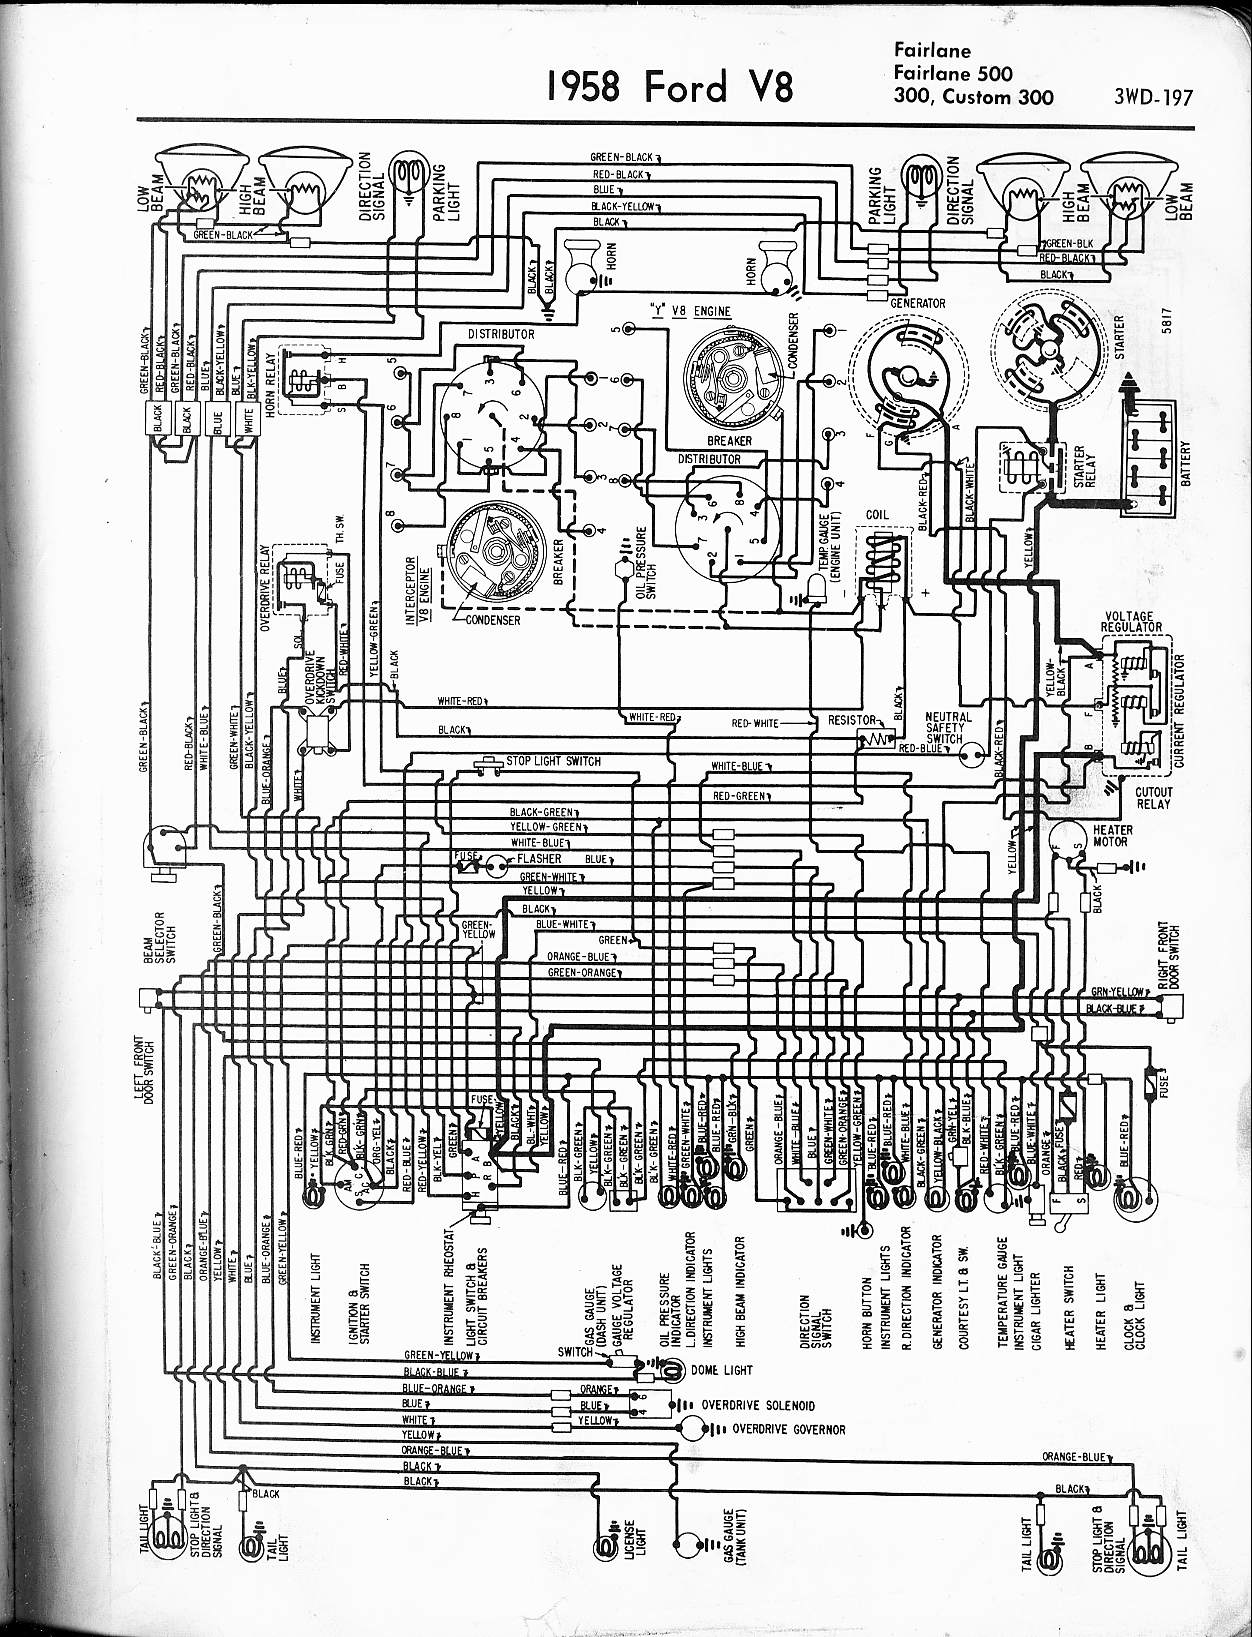 57 65 Ford Wiring Diagrams Dodge Challenger Wiring Diagram 66 Ford Fairlane  Wiring Diagrams Regulator